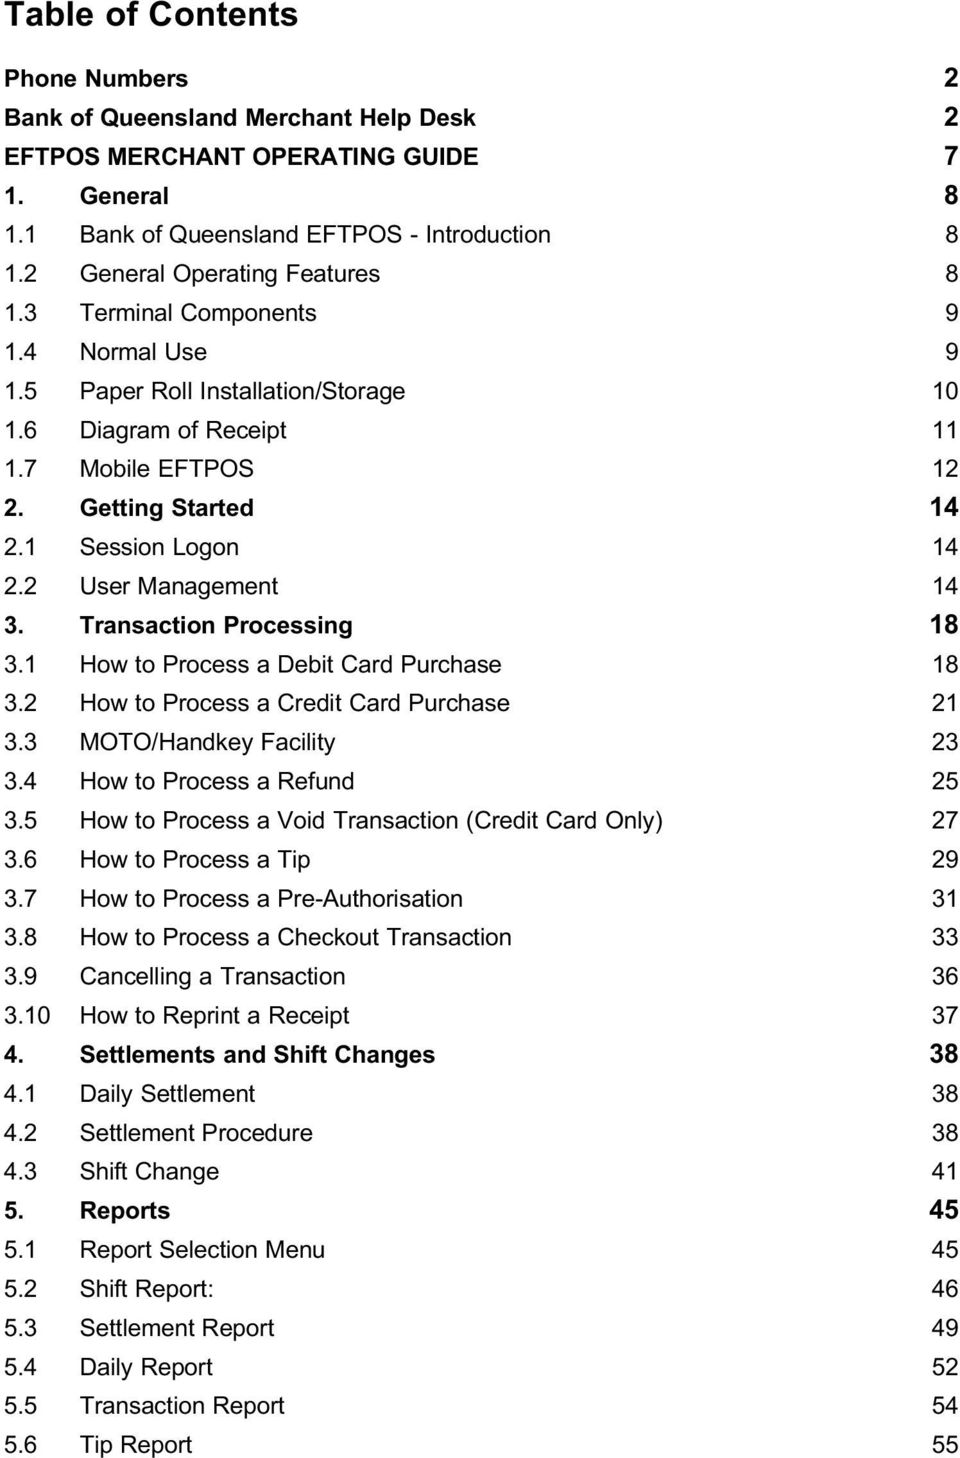 1 Session Logon 14 2.2 User Management 14 3. Transaction Processing 18 3.1 How to Process a Debit Card Purchase 18 3.2 How to Process a Credit Card Purchase 21 3.3 MOTO/Handkey Facility 23 3.